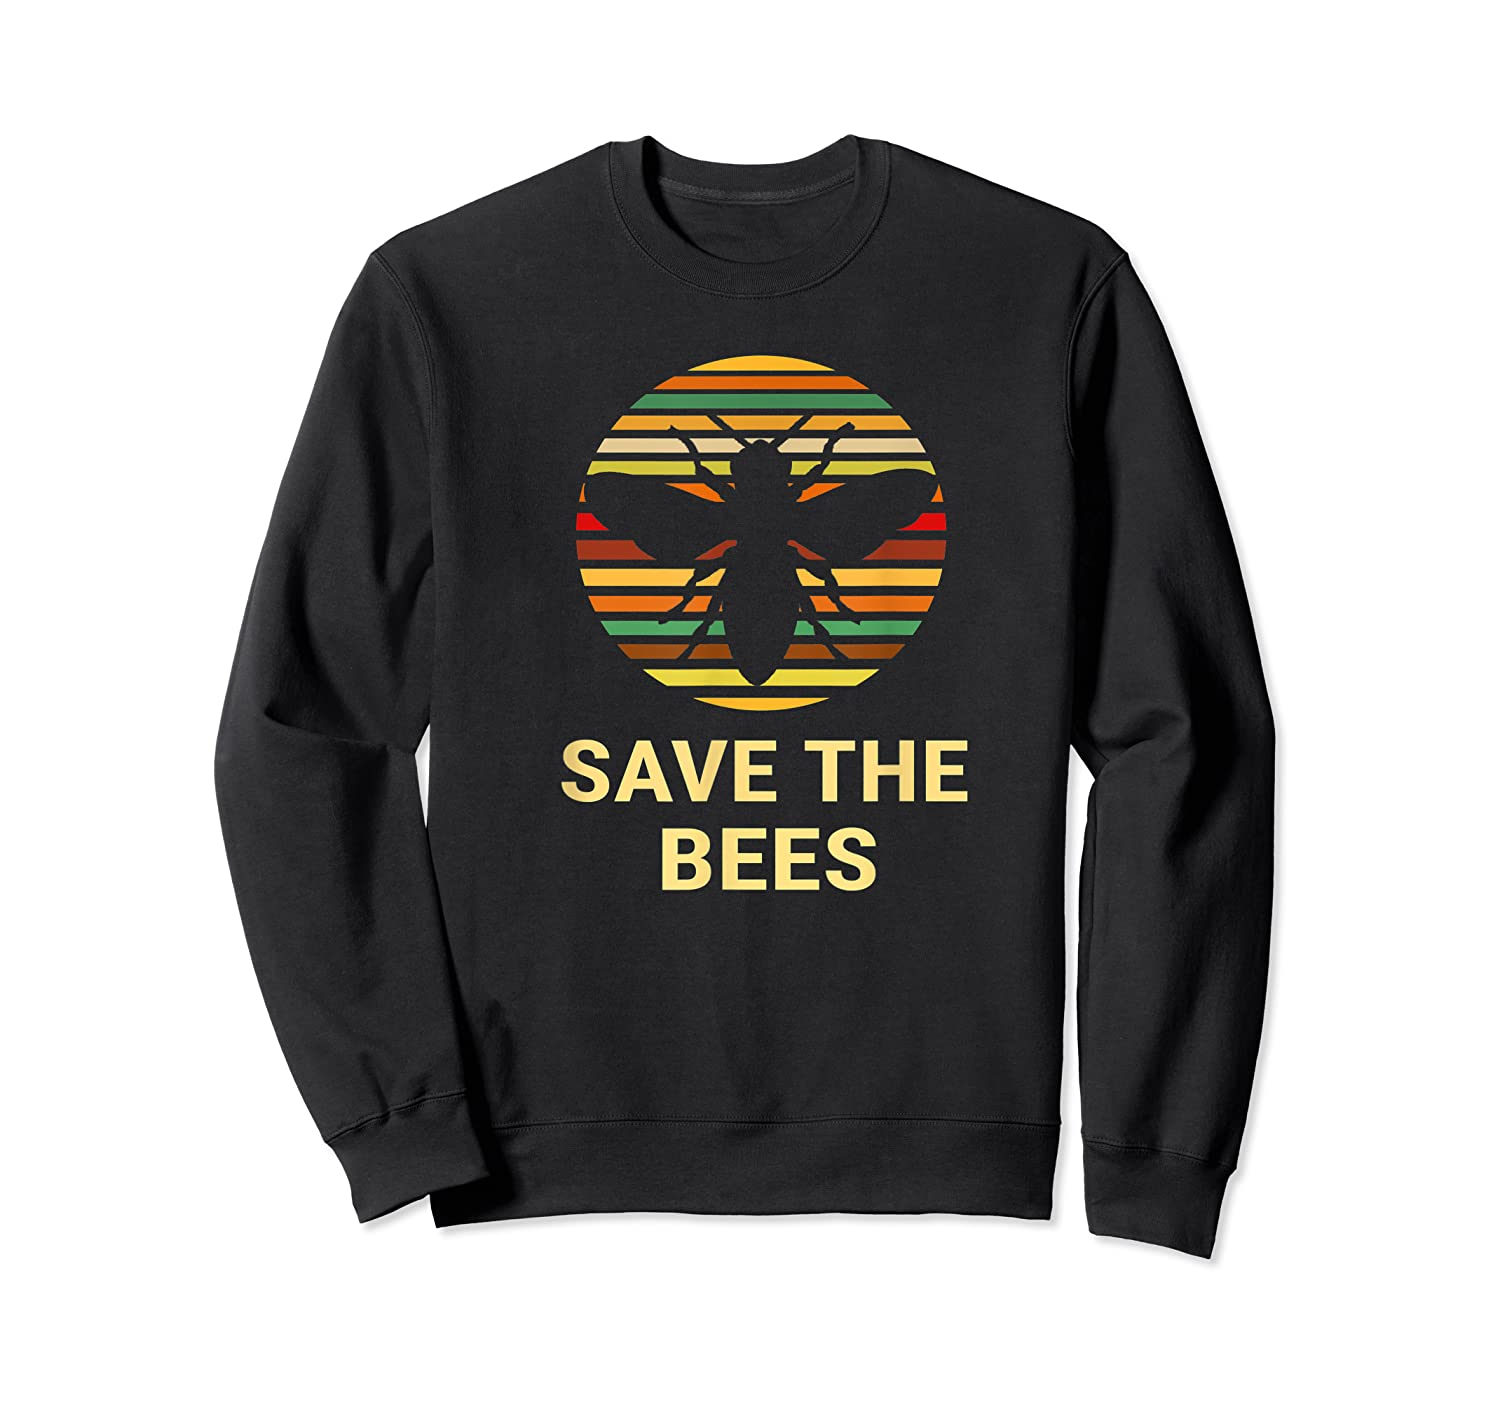 Save The Bees T Shirt Vintage Sunset Bees Gift Shirt Crewneck Sweater